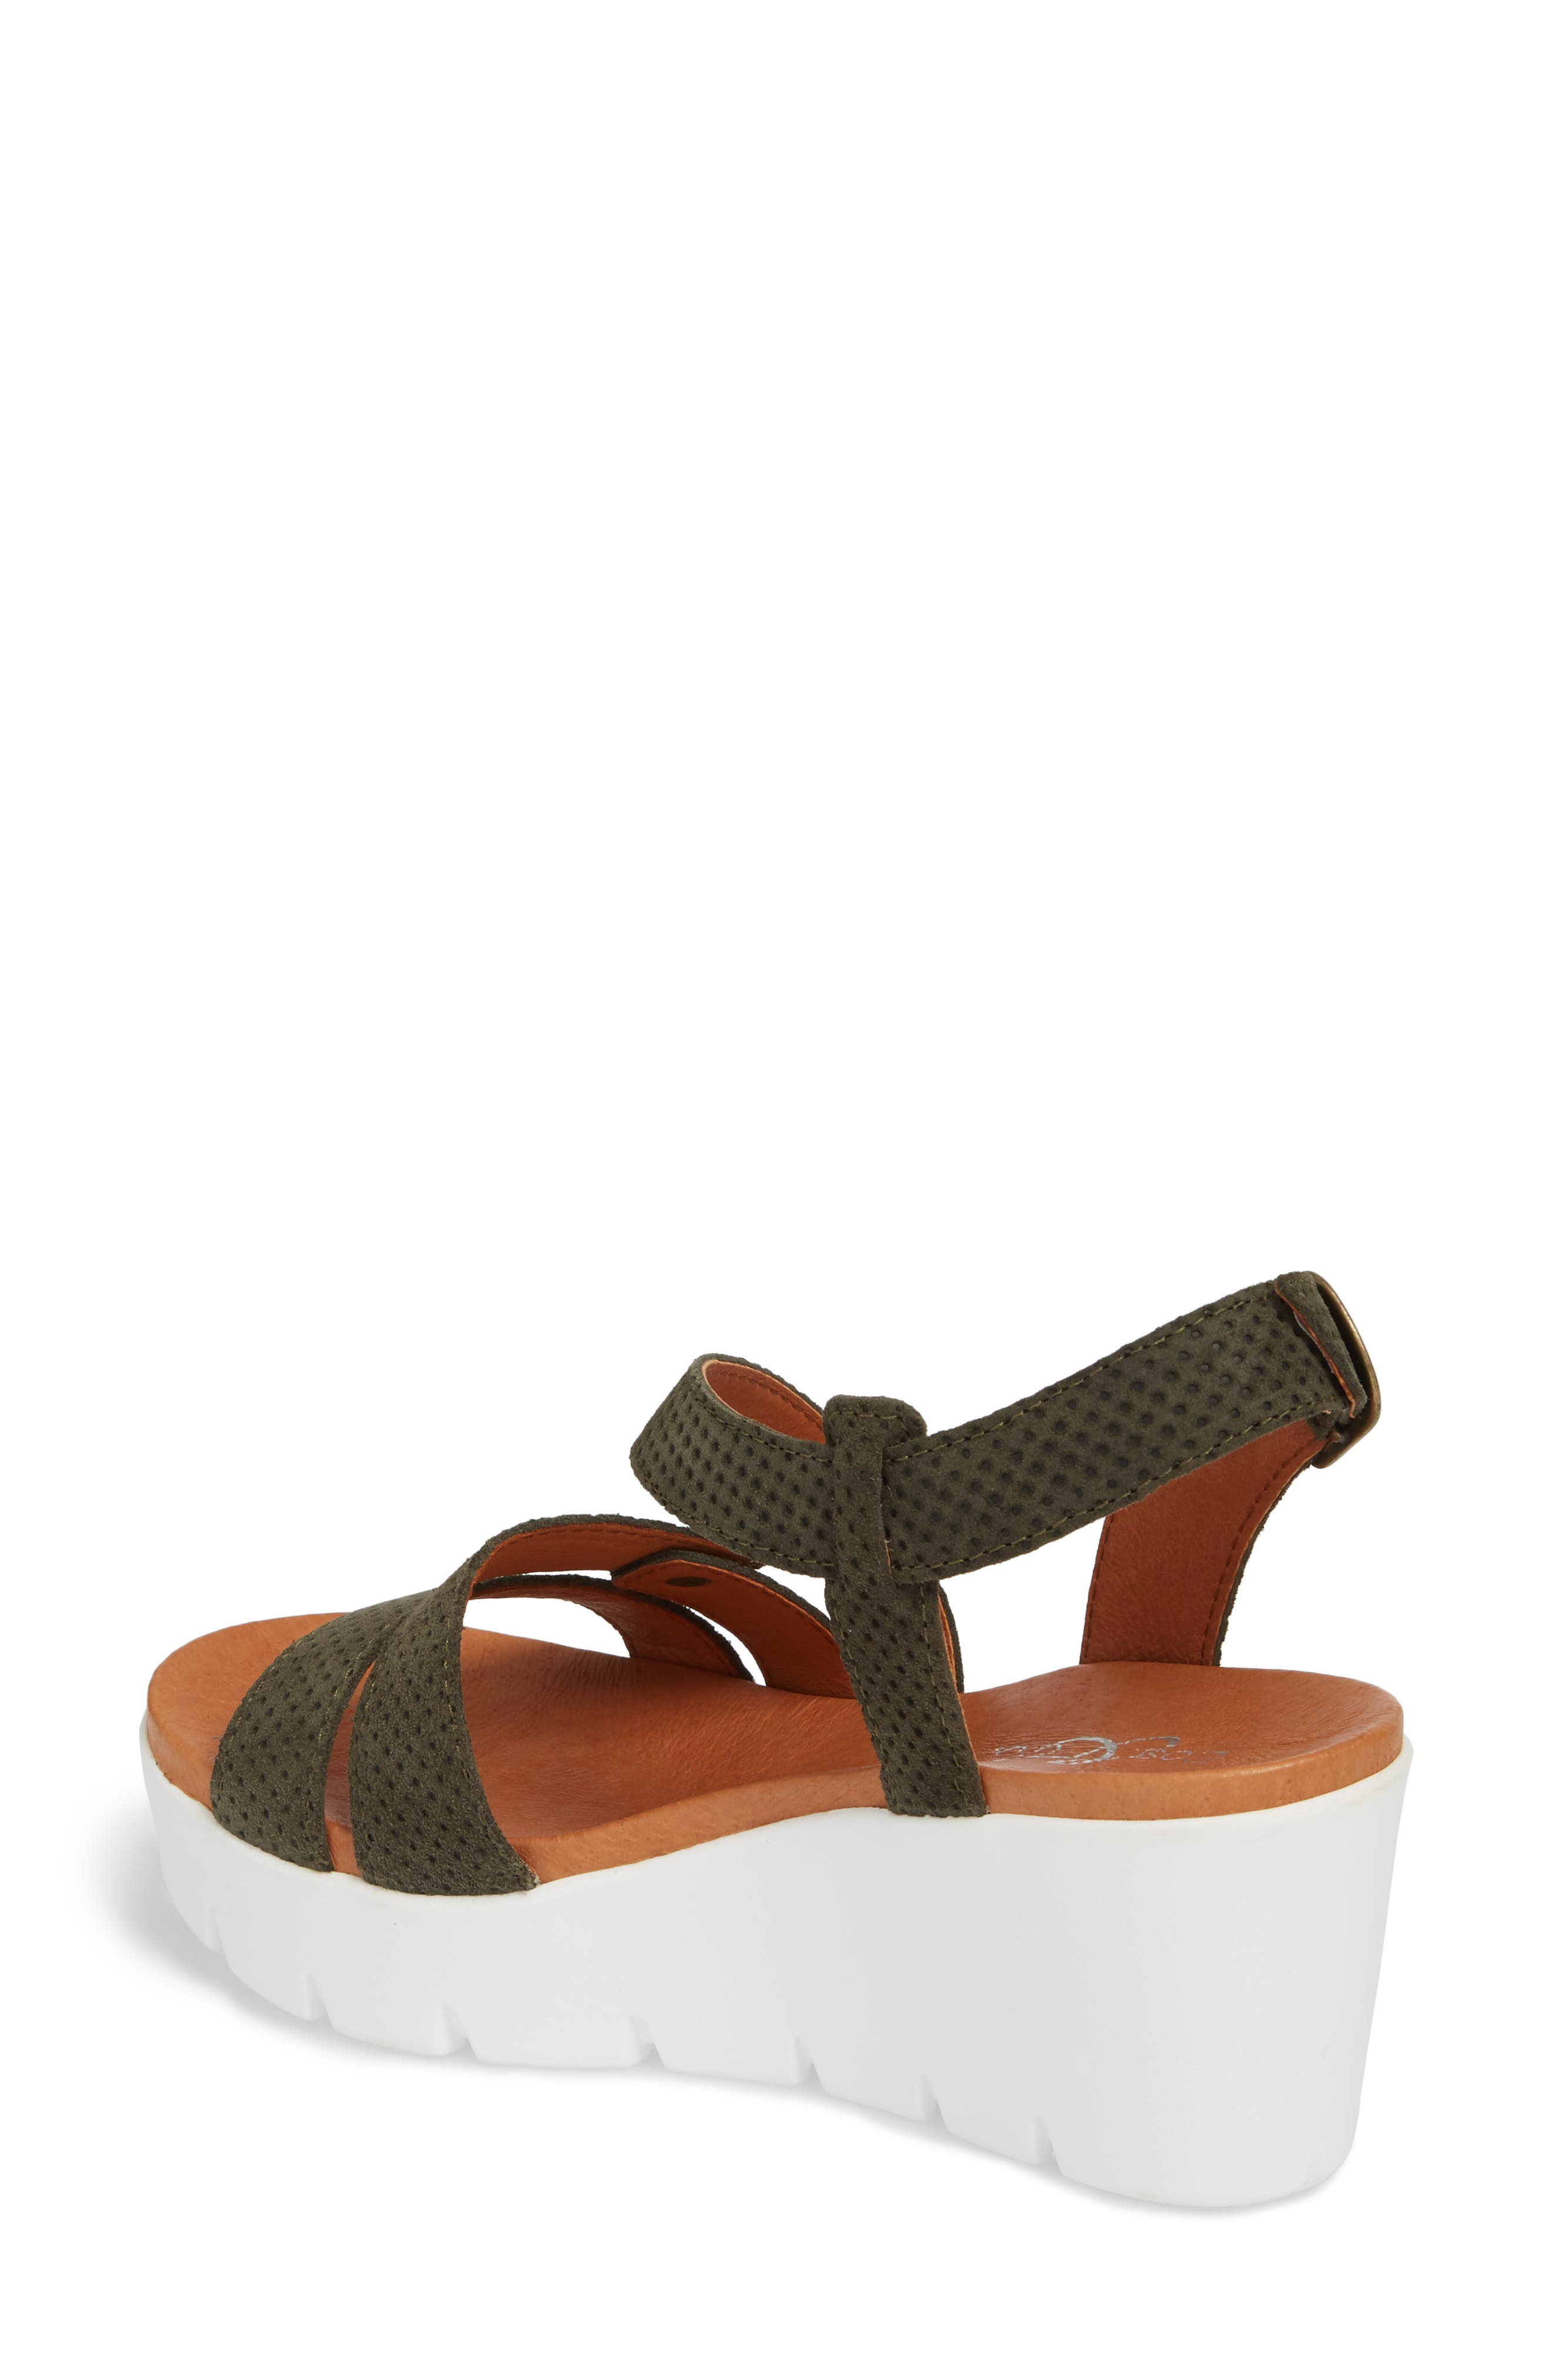 Sierra Platform Wedge Sandal,                             Alternate thumbnail 2, color,                             MINT LEATHER